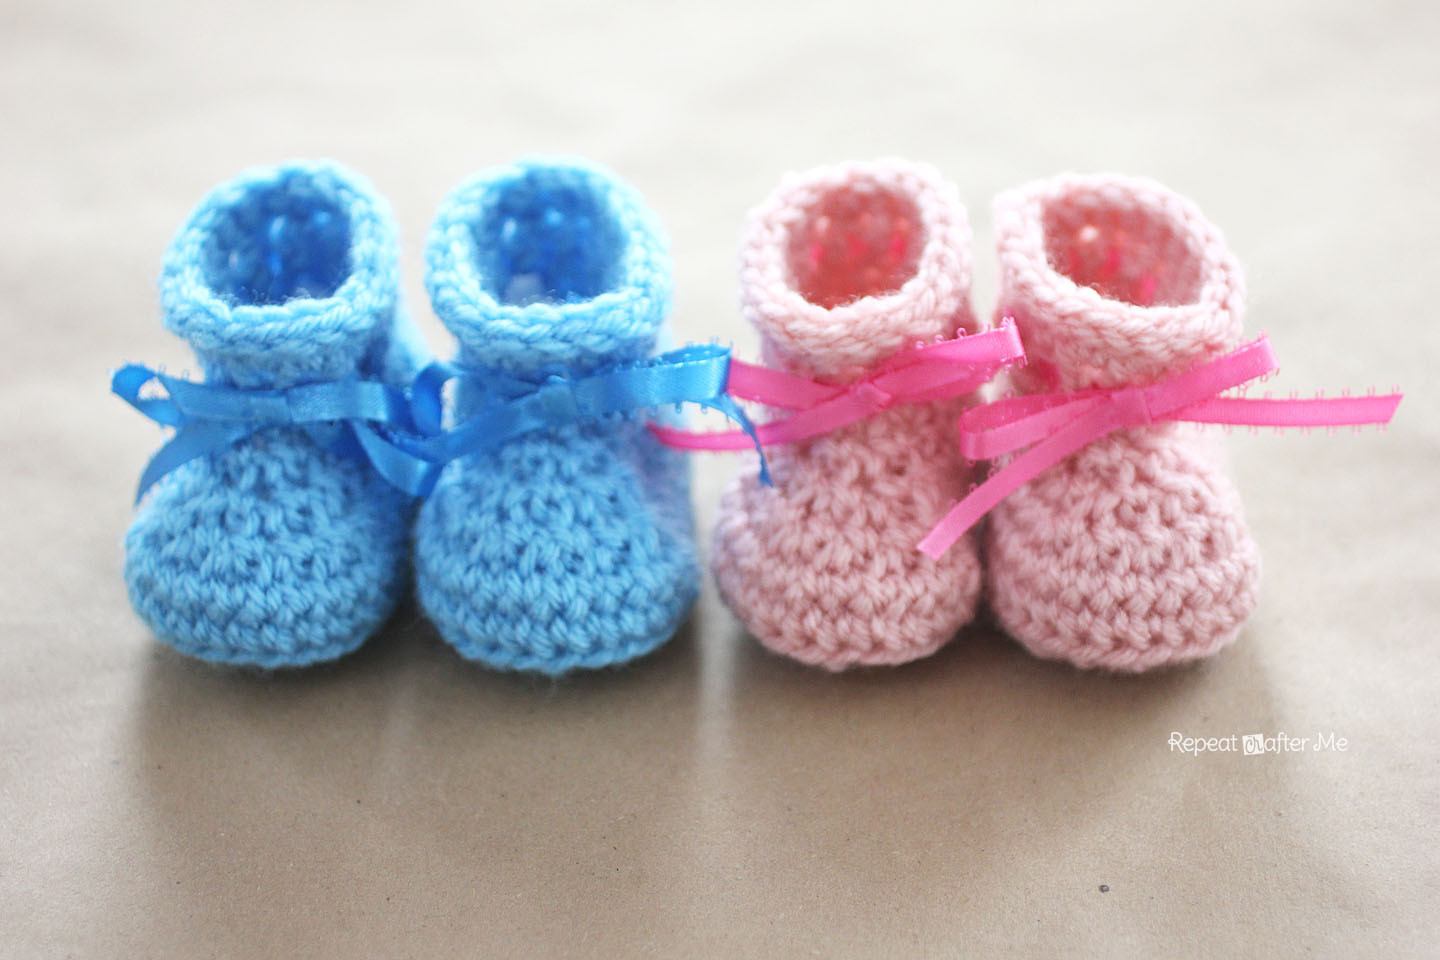 Fresh Crochet Newborn Baby Booties Pattern Repeat Crafter Me Crochet for Baby Of New 46 Pictures Crochet for Baby